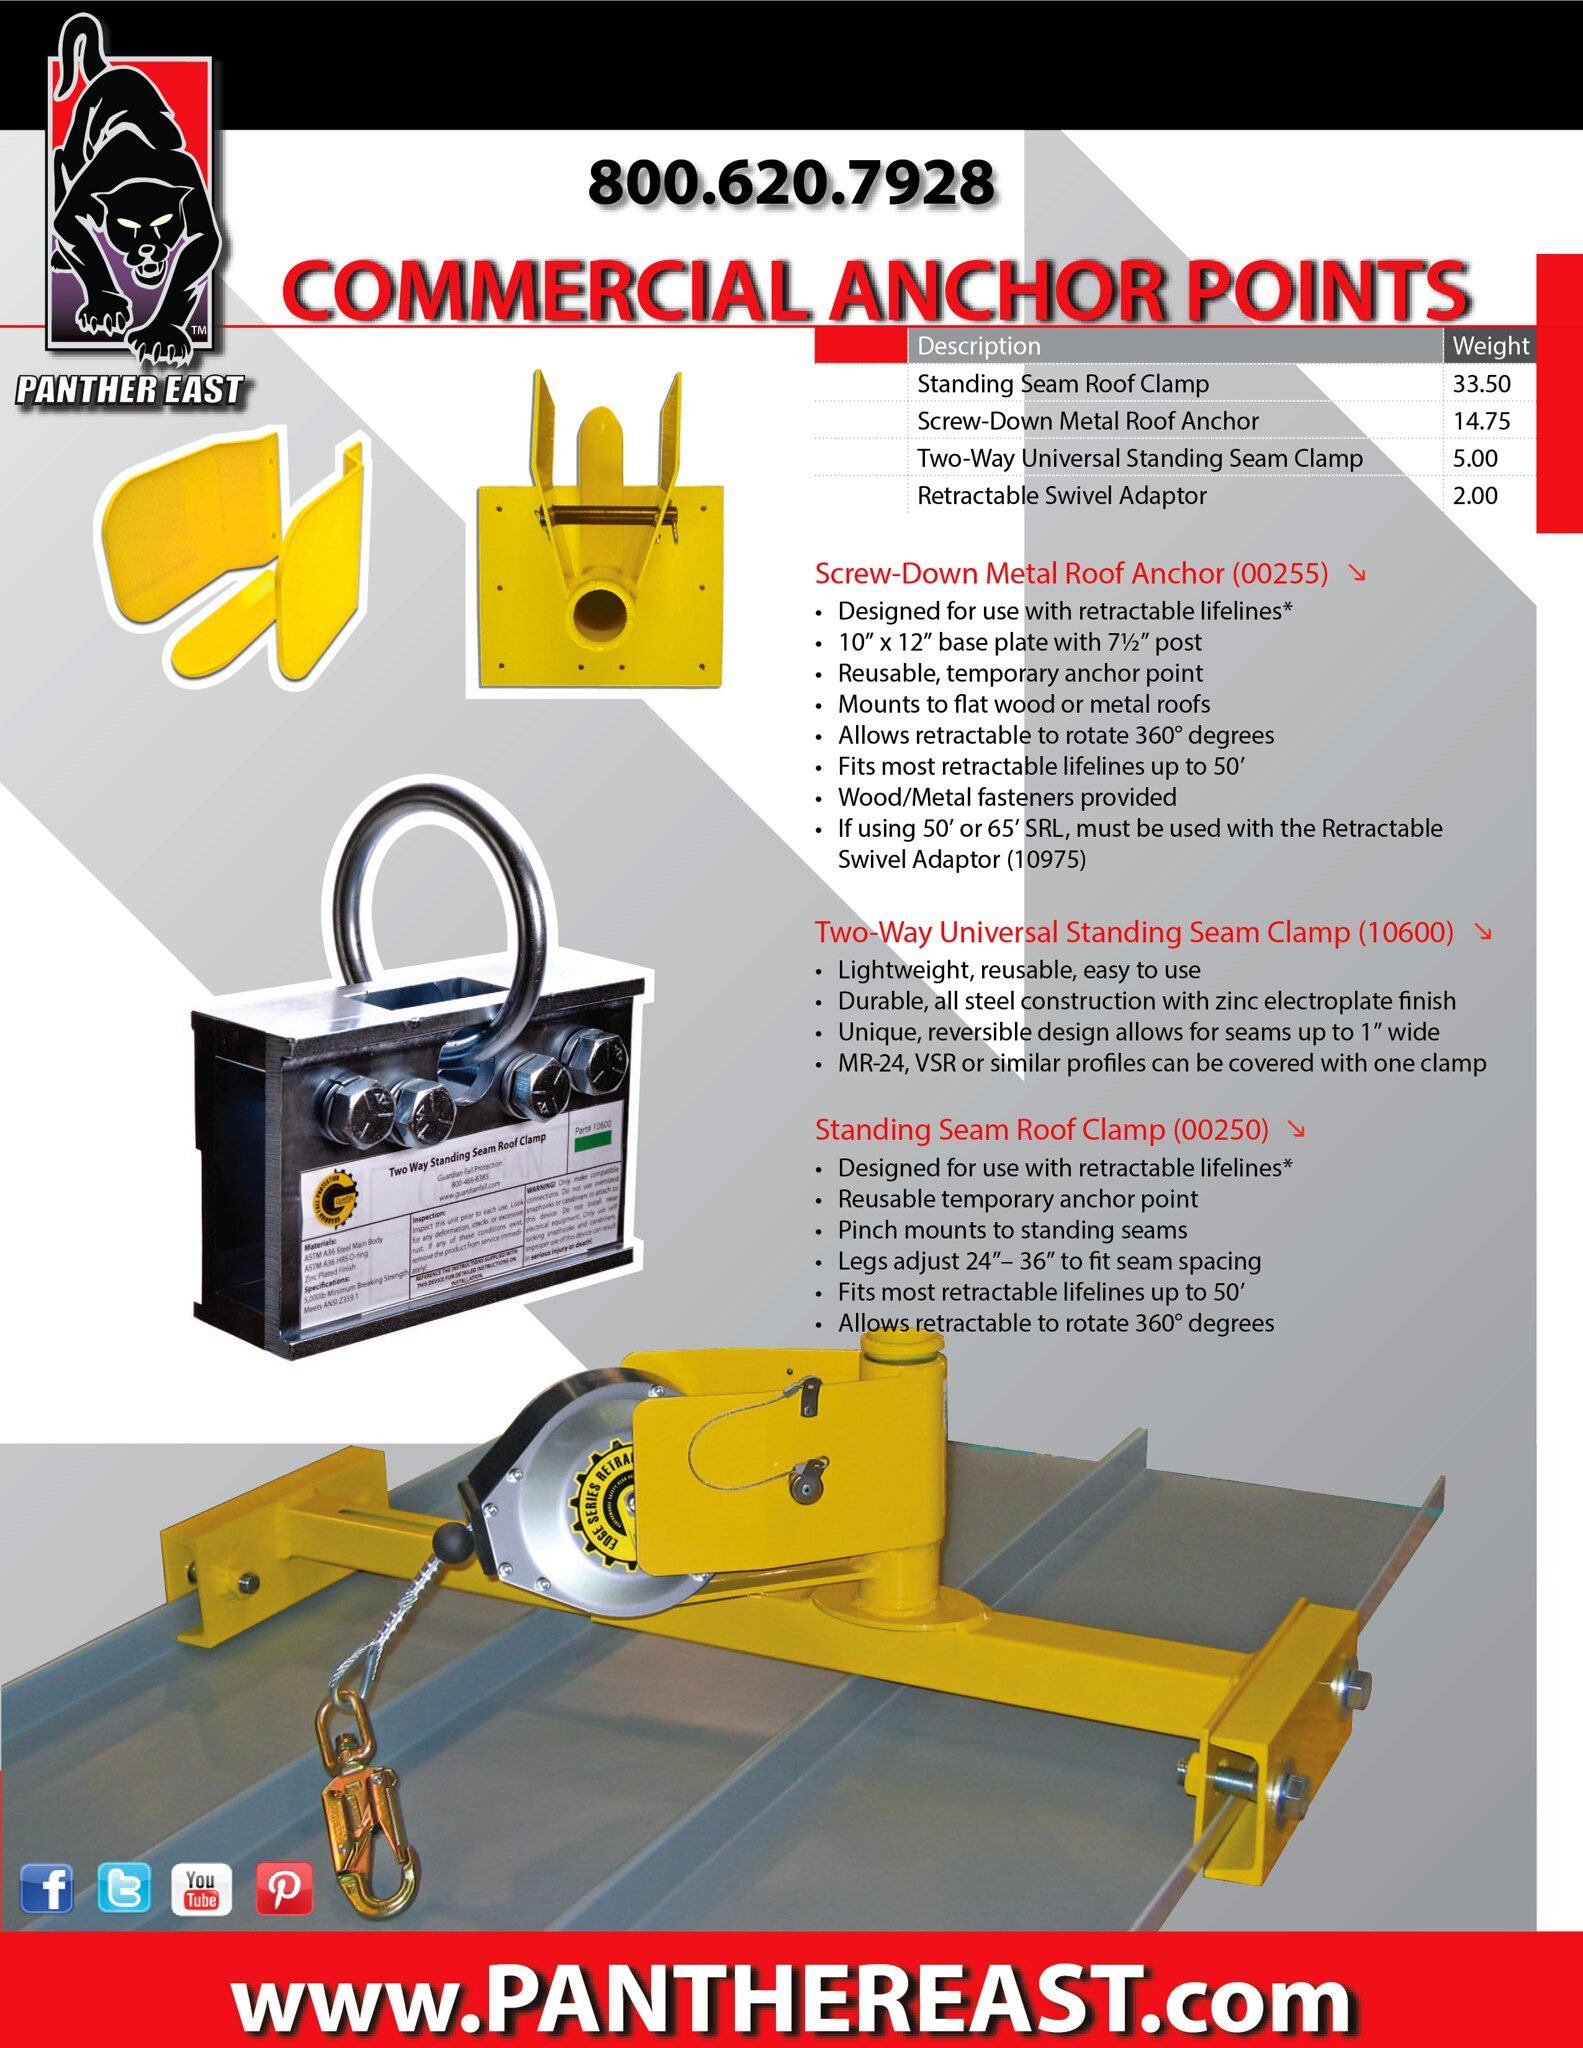 DEALS on Standing Seam/Metal Roof Equipment, Tools and Fall Protection Equipment!